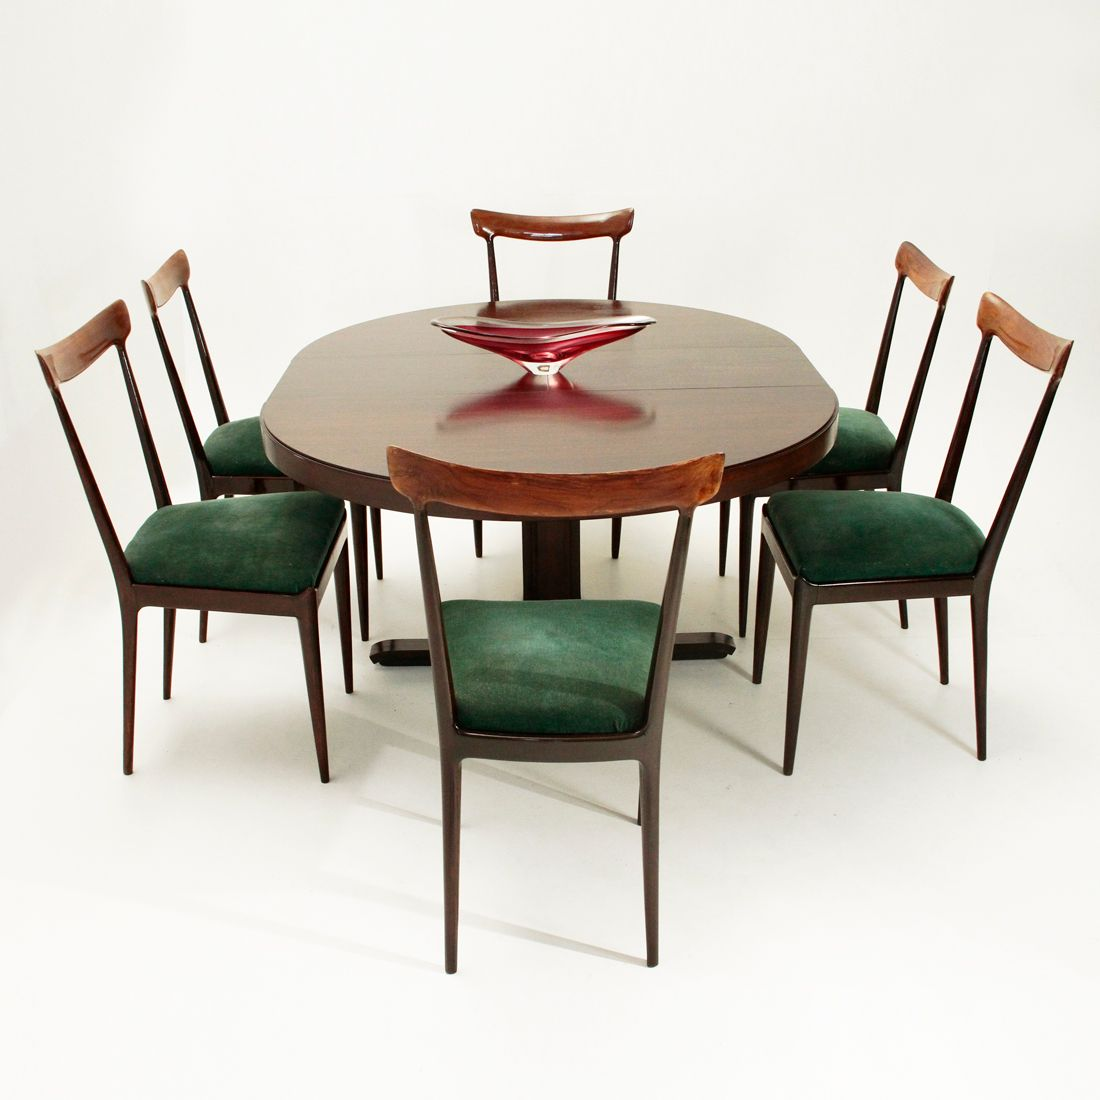 Extensible dining table by giovanni ausenda for stilwood for Dining table extensible